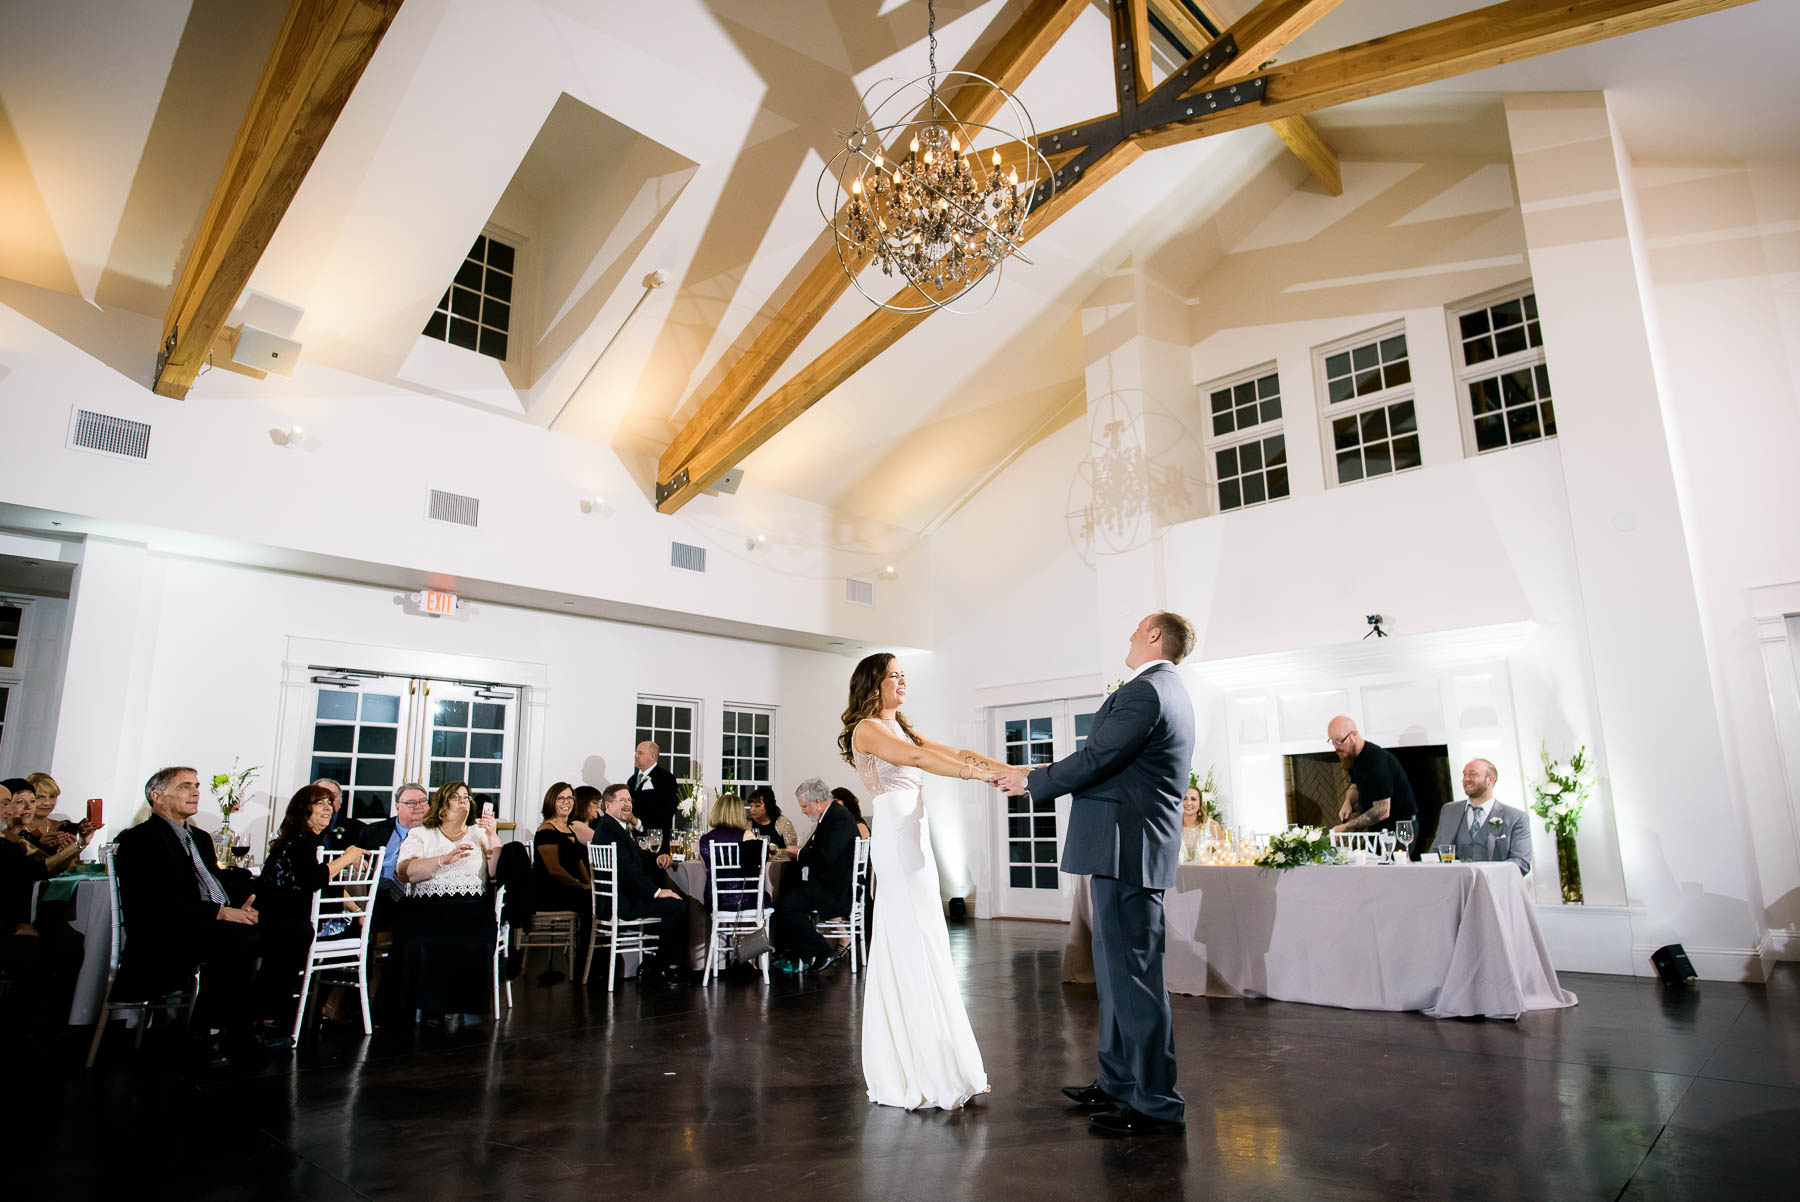 First dance during a wedding at the Manor House in Littleton, Colorado.